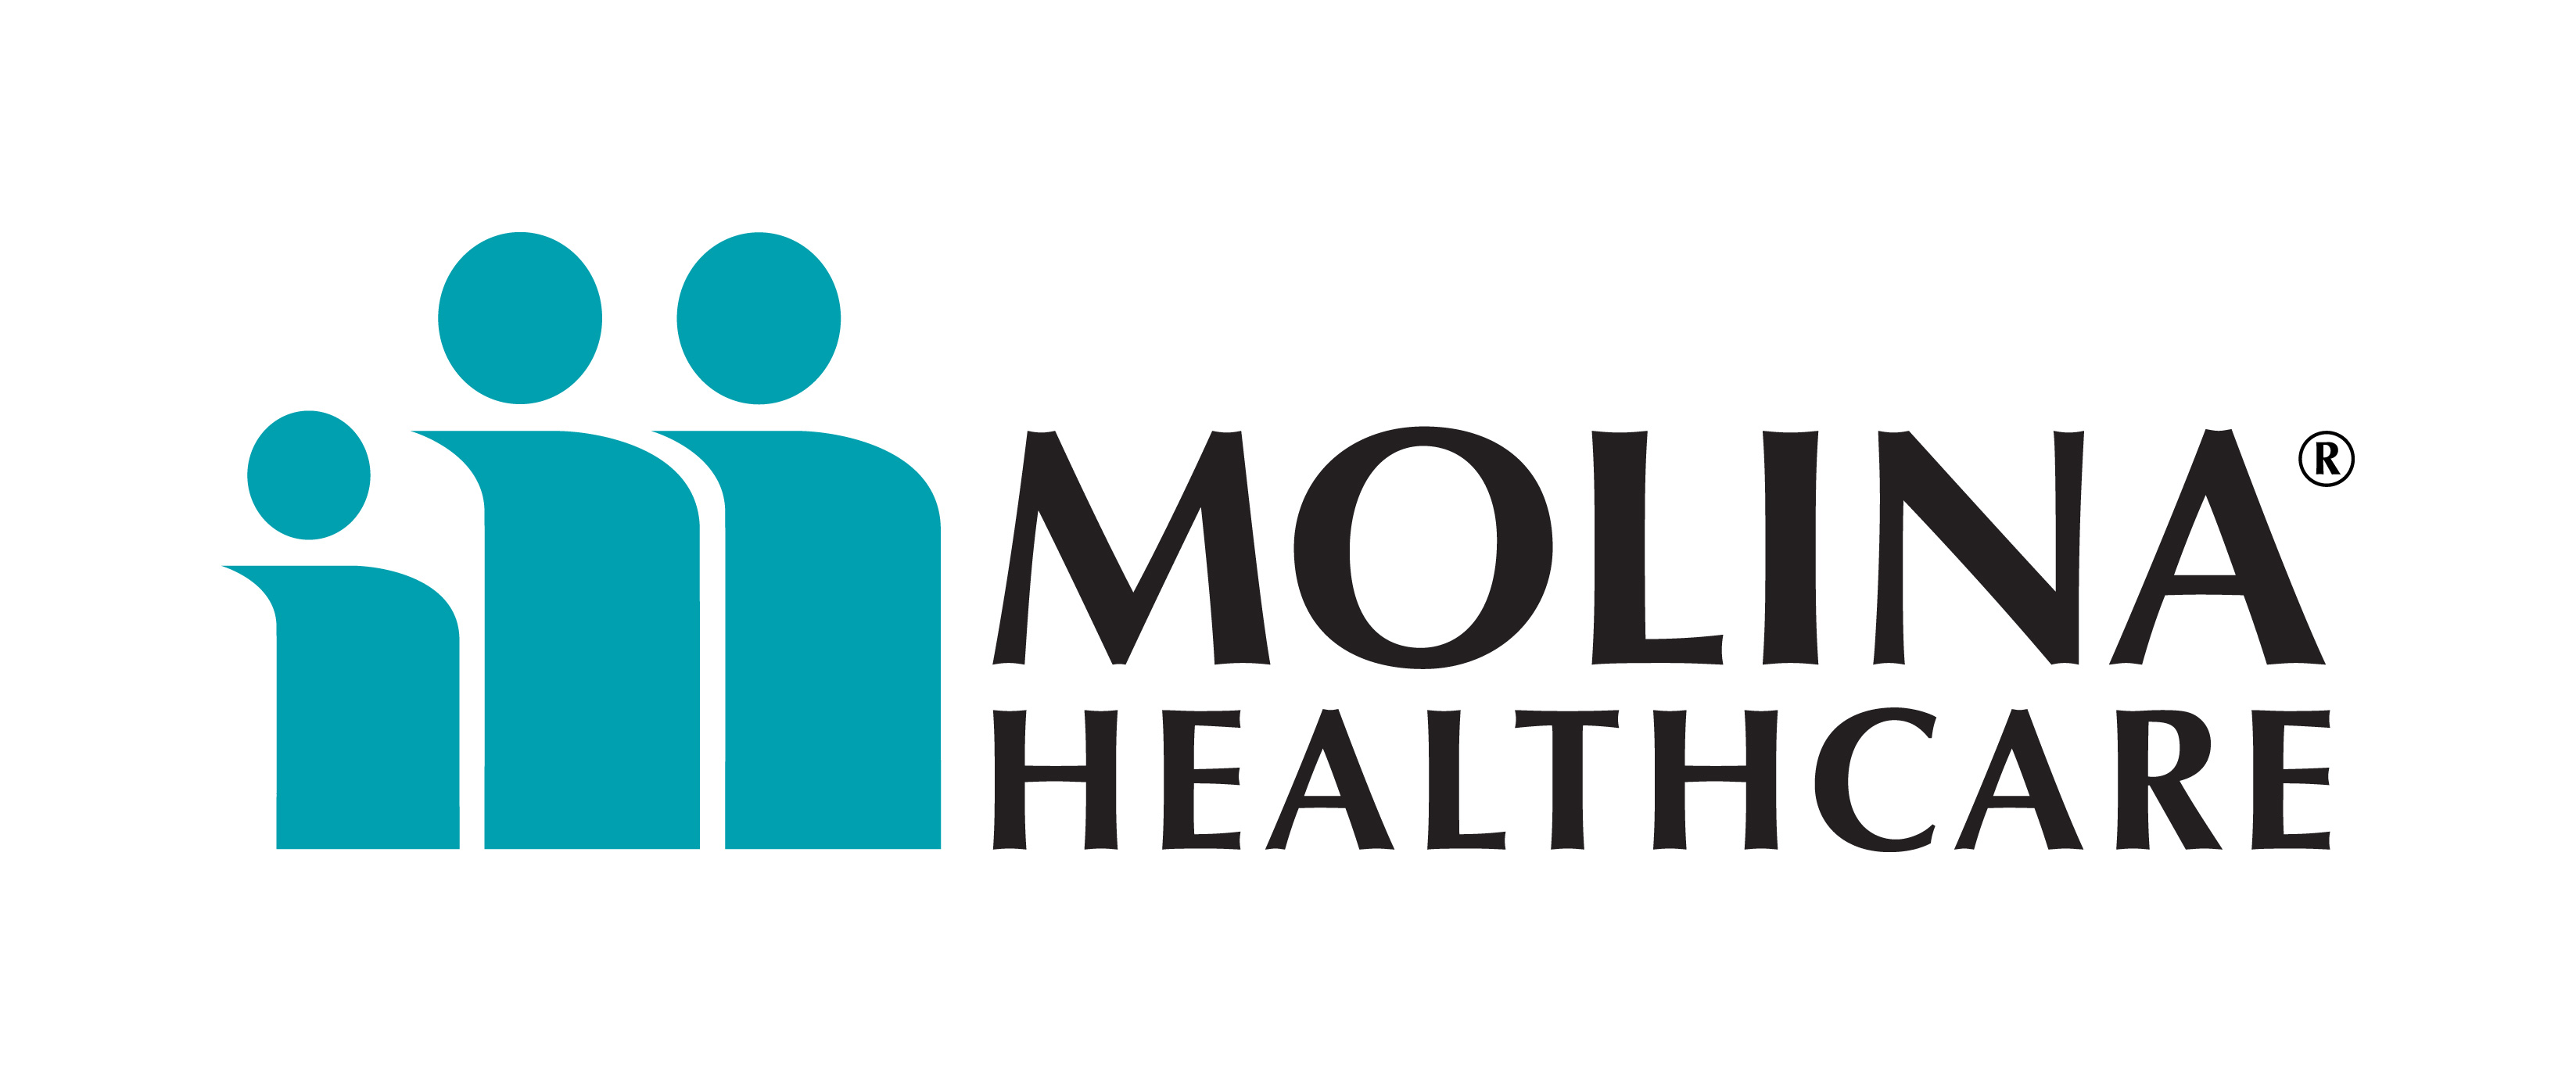 6. Molina Healthcare